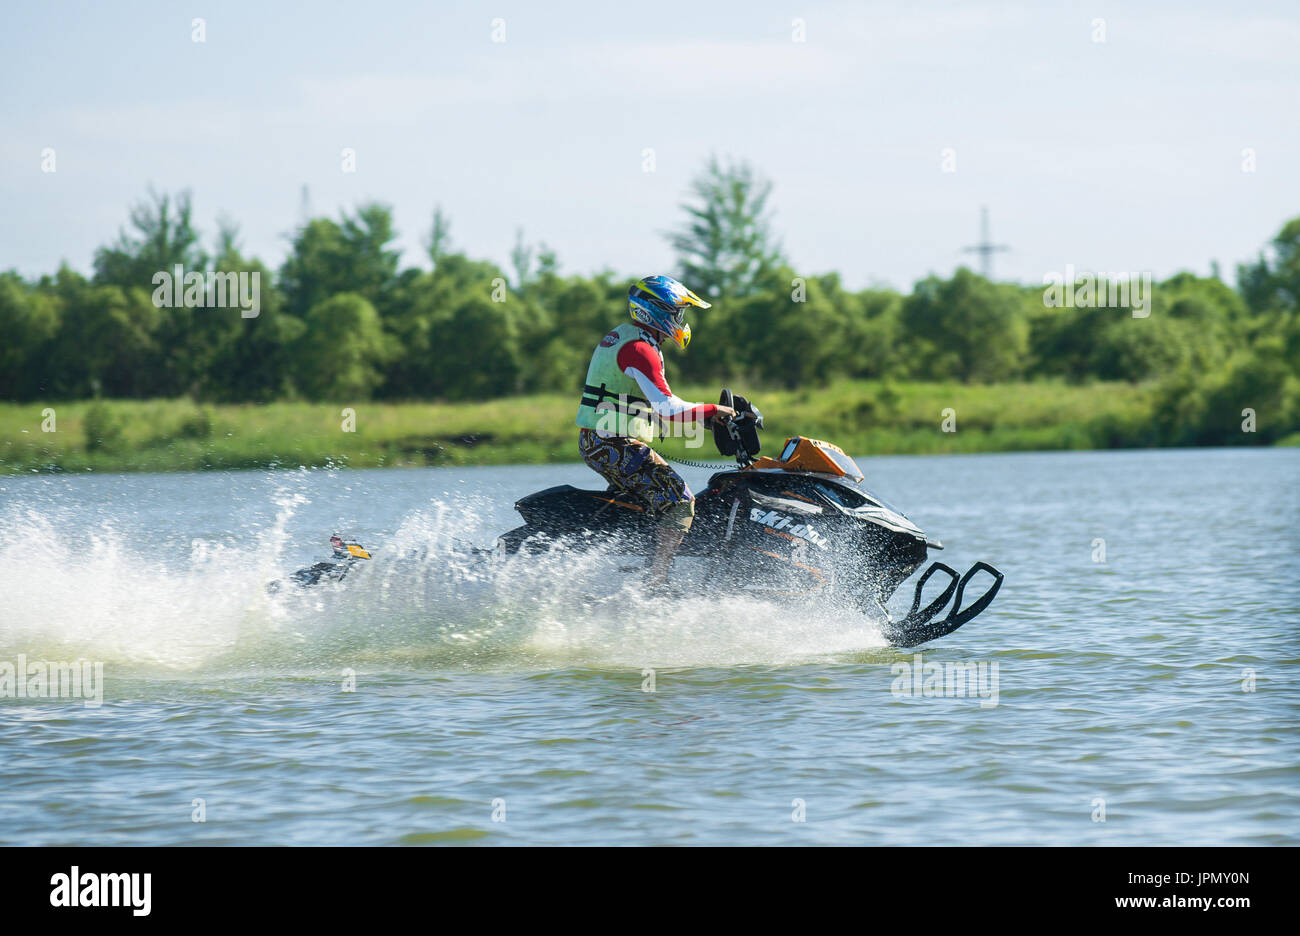 man on snowmobile goes fast on the water in summer - Stock Image